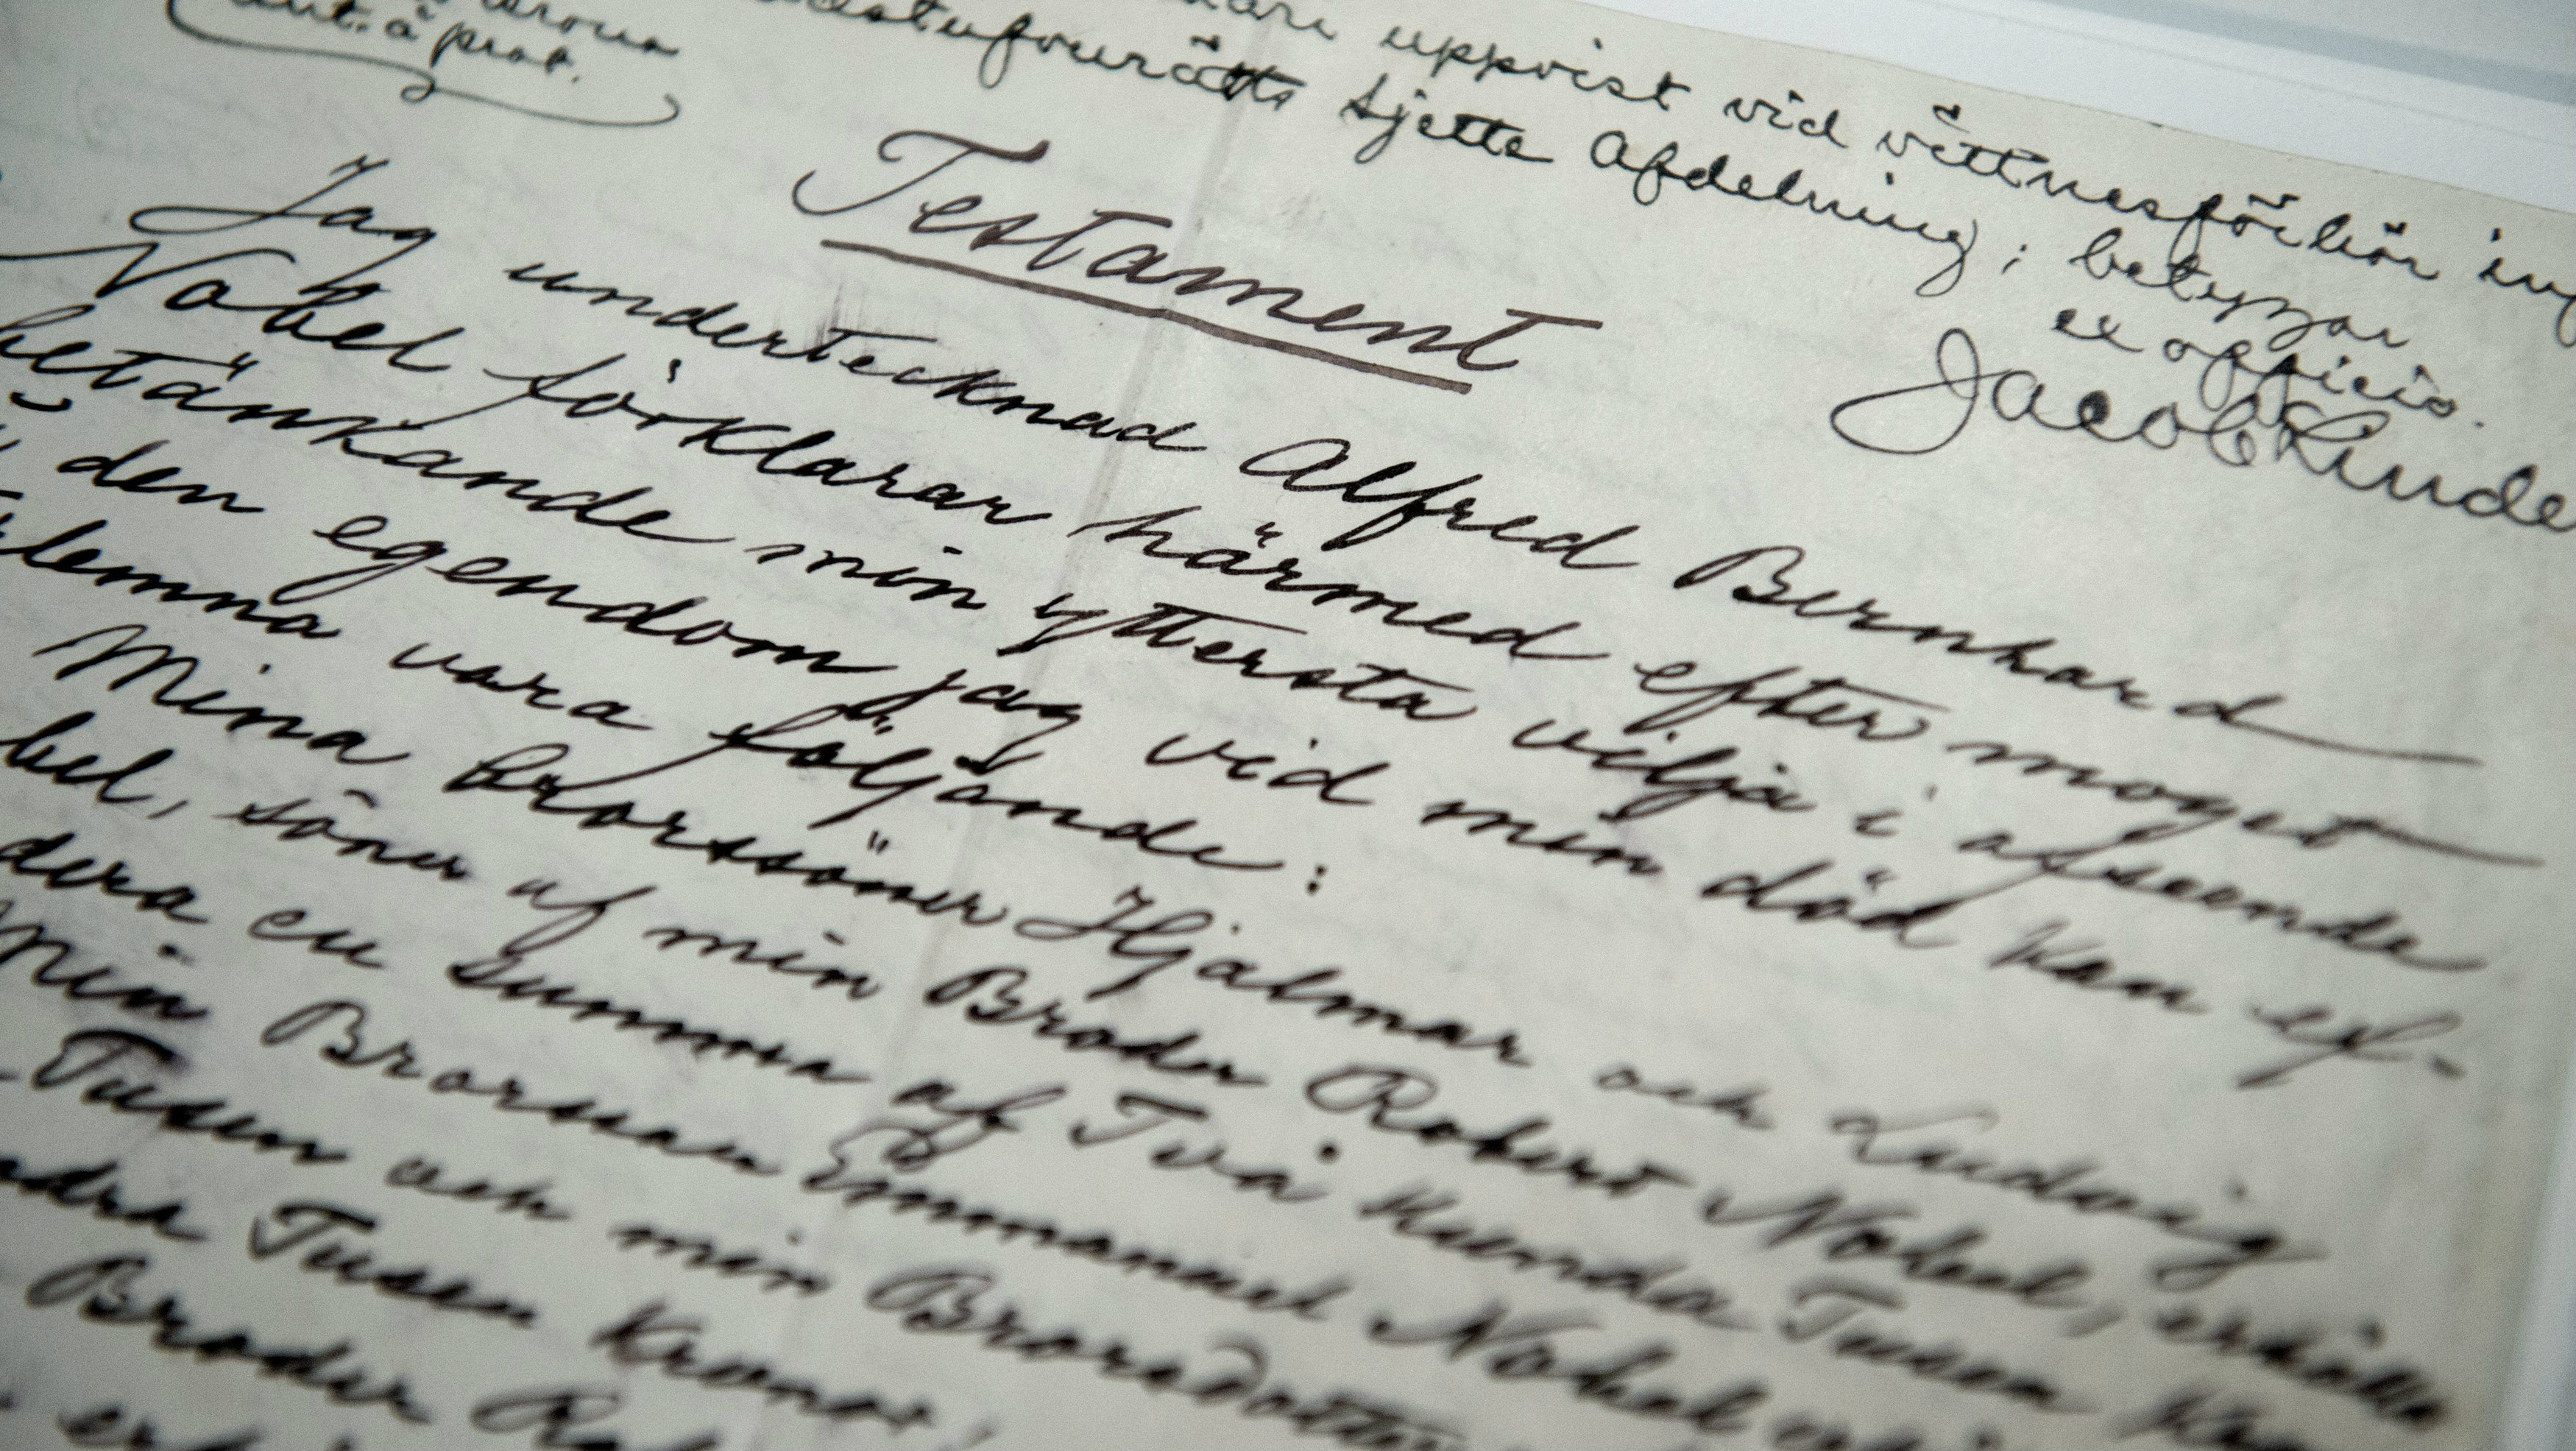 The testament of Alfred Nobel is shown by a senior curator at the Nobel Museum.